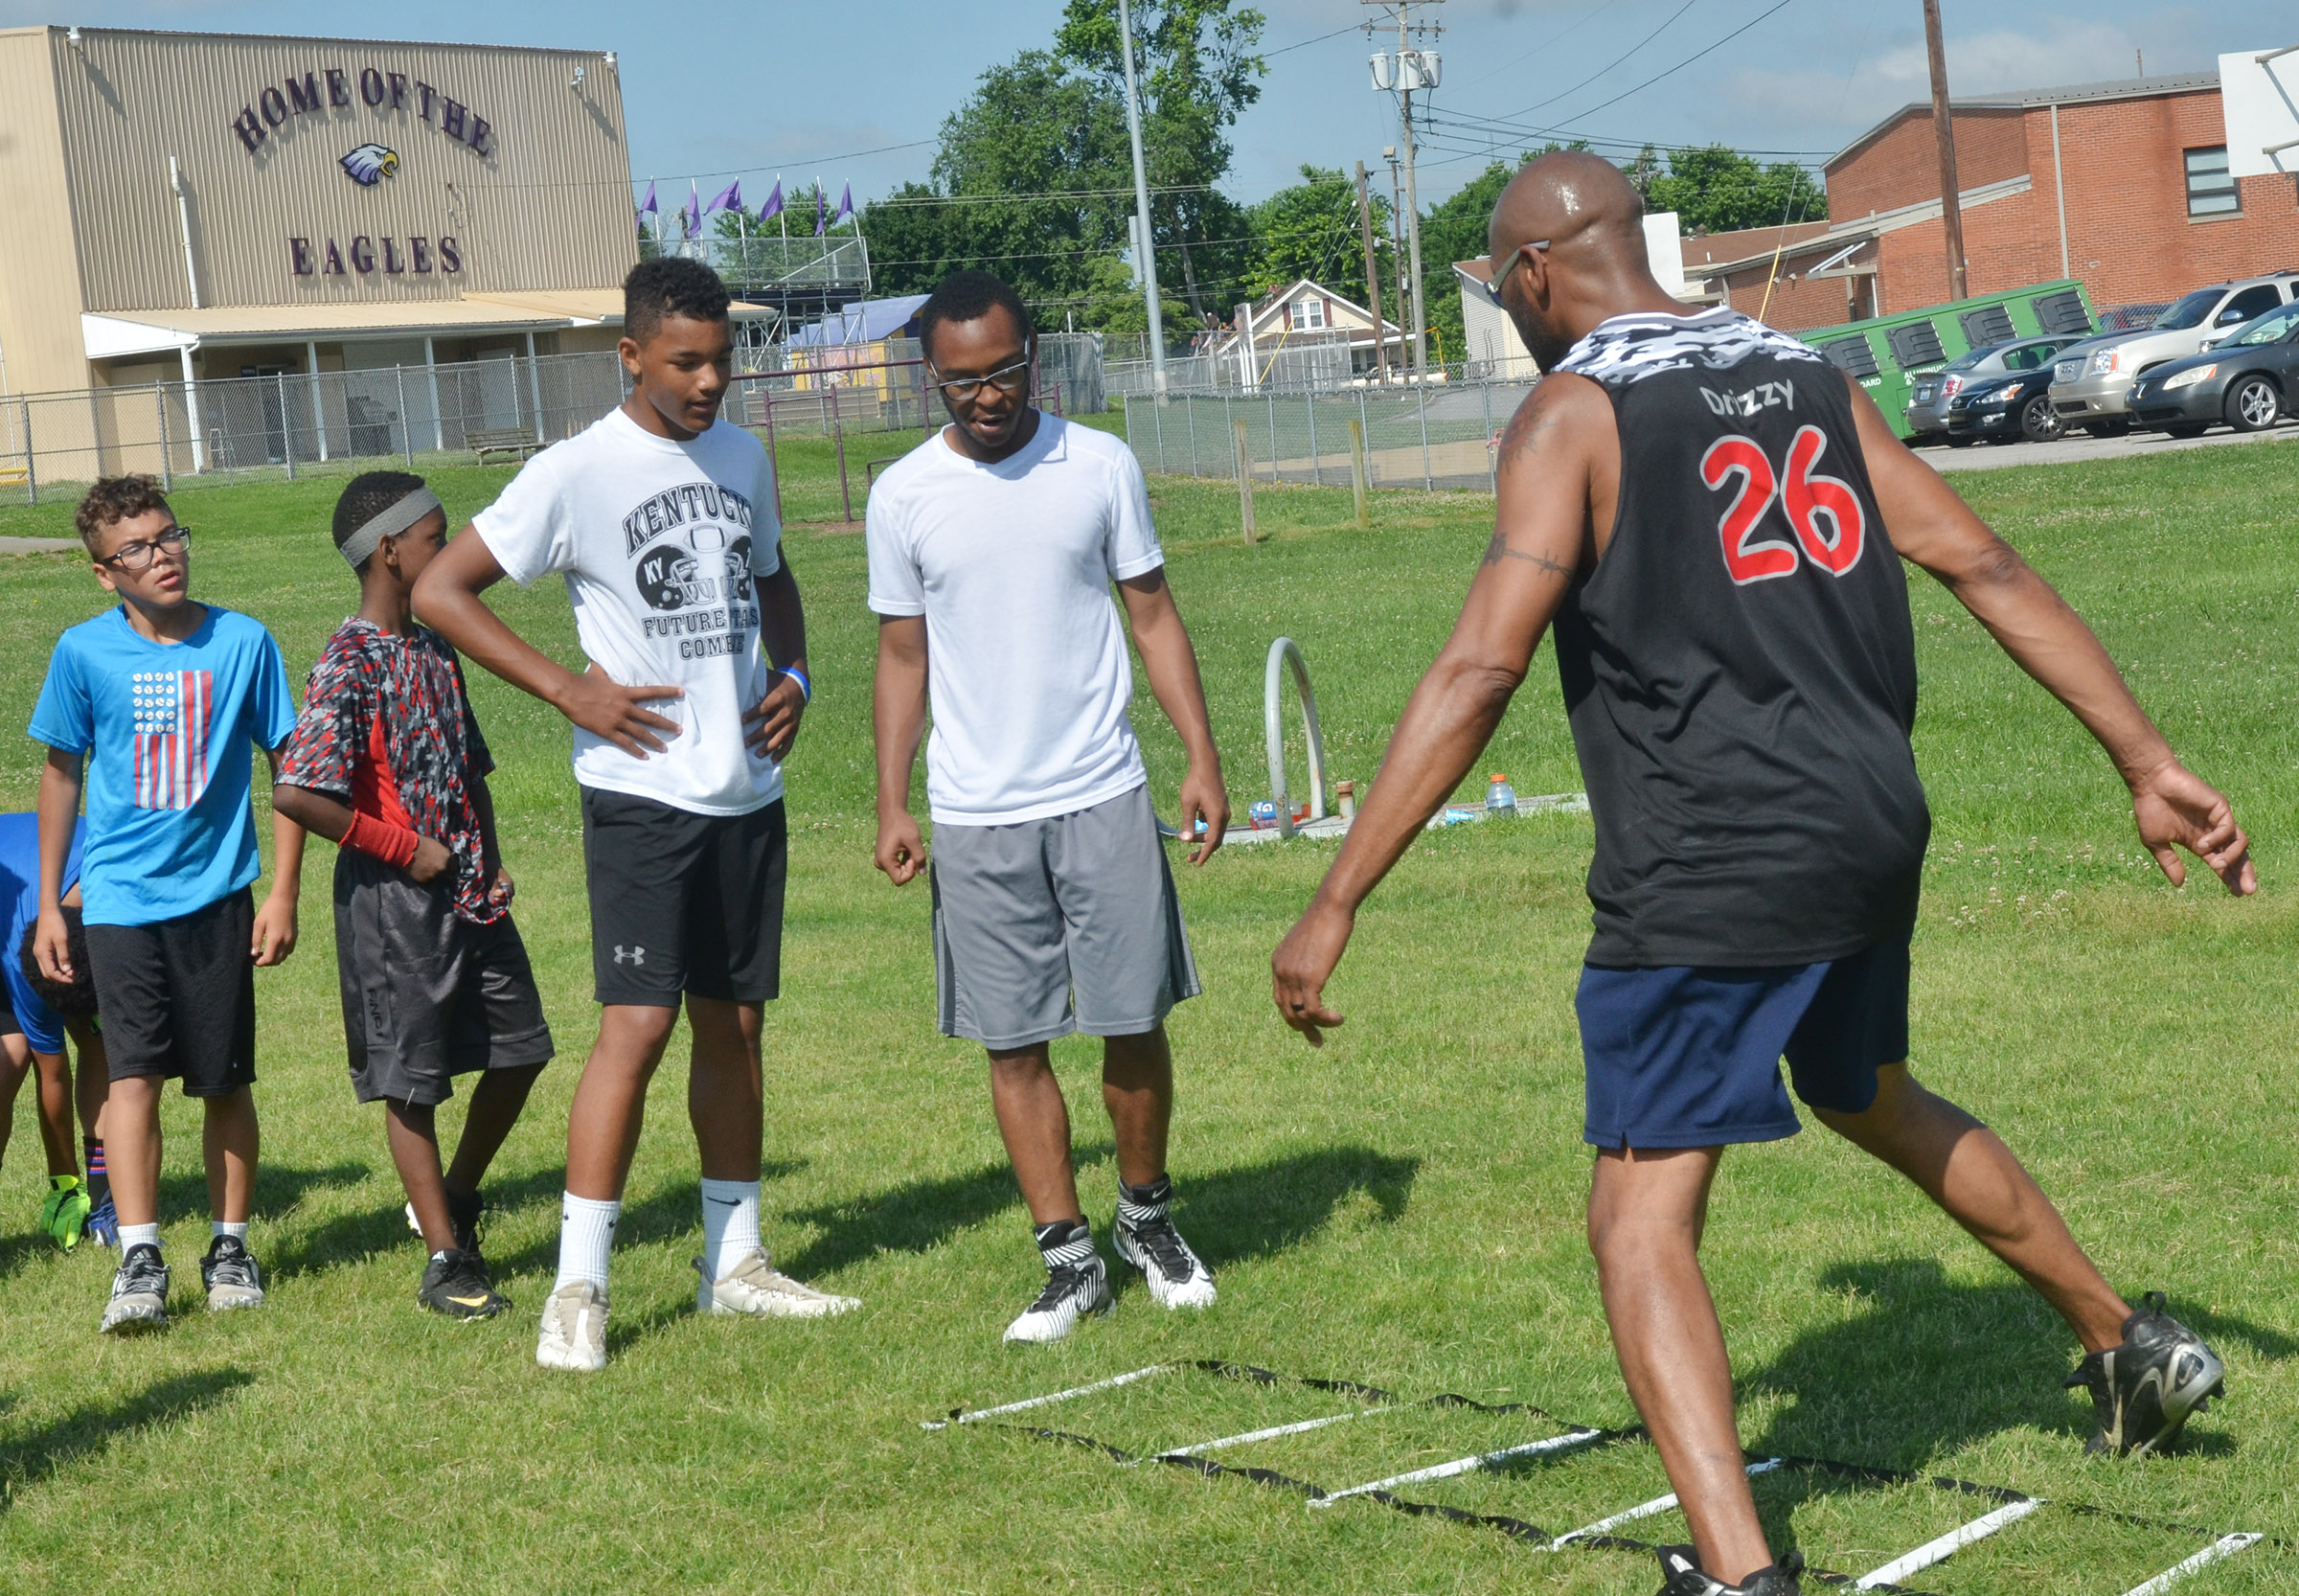 Former NFL player Tony Driver shows campers how to run a drill.